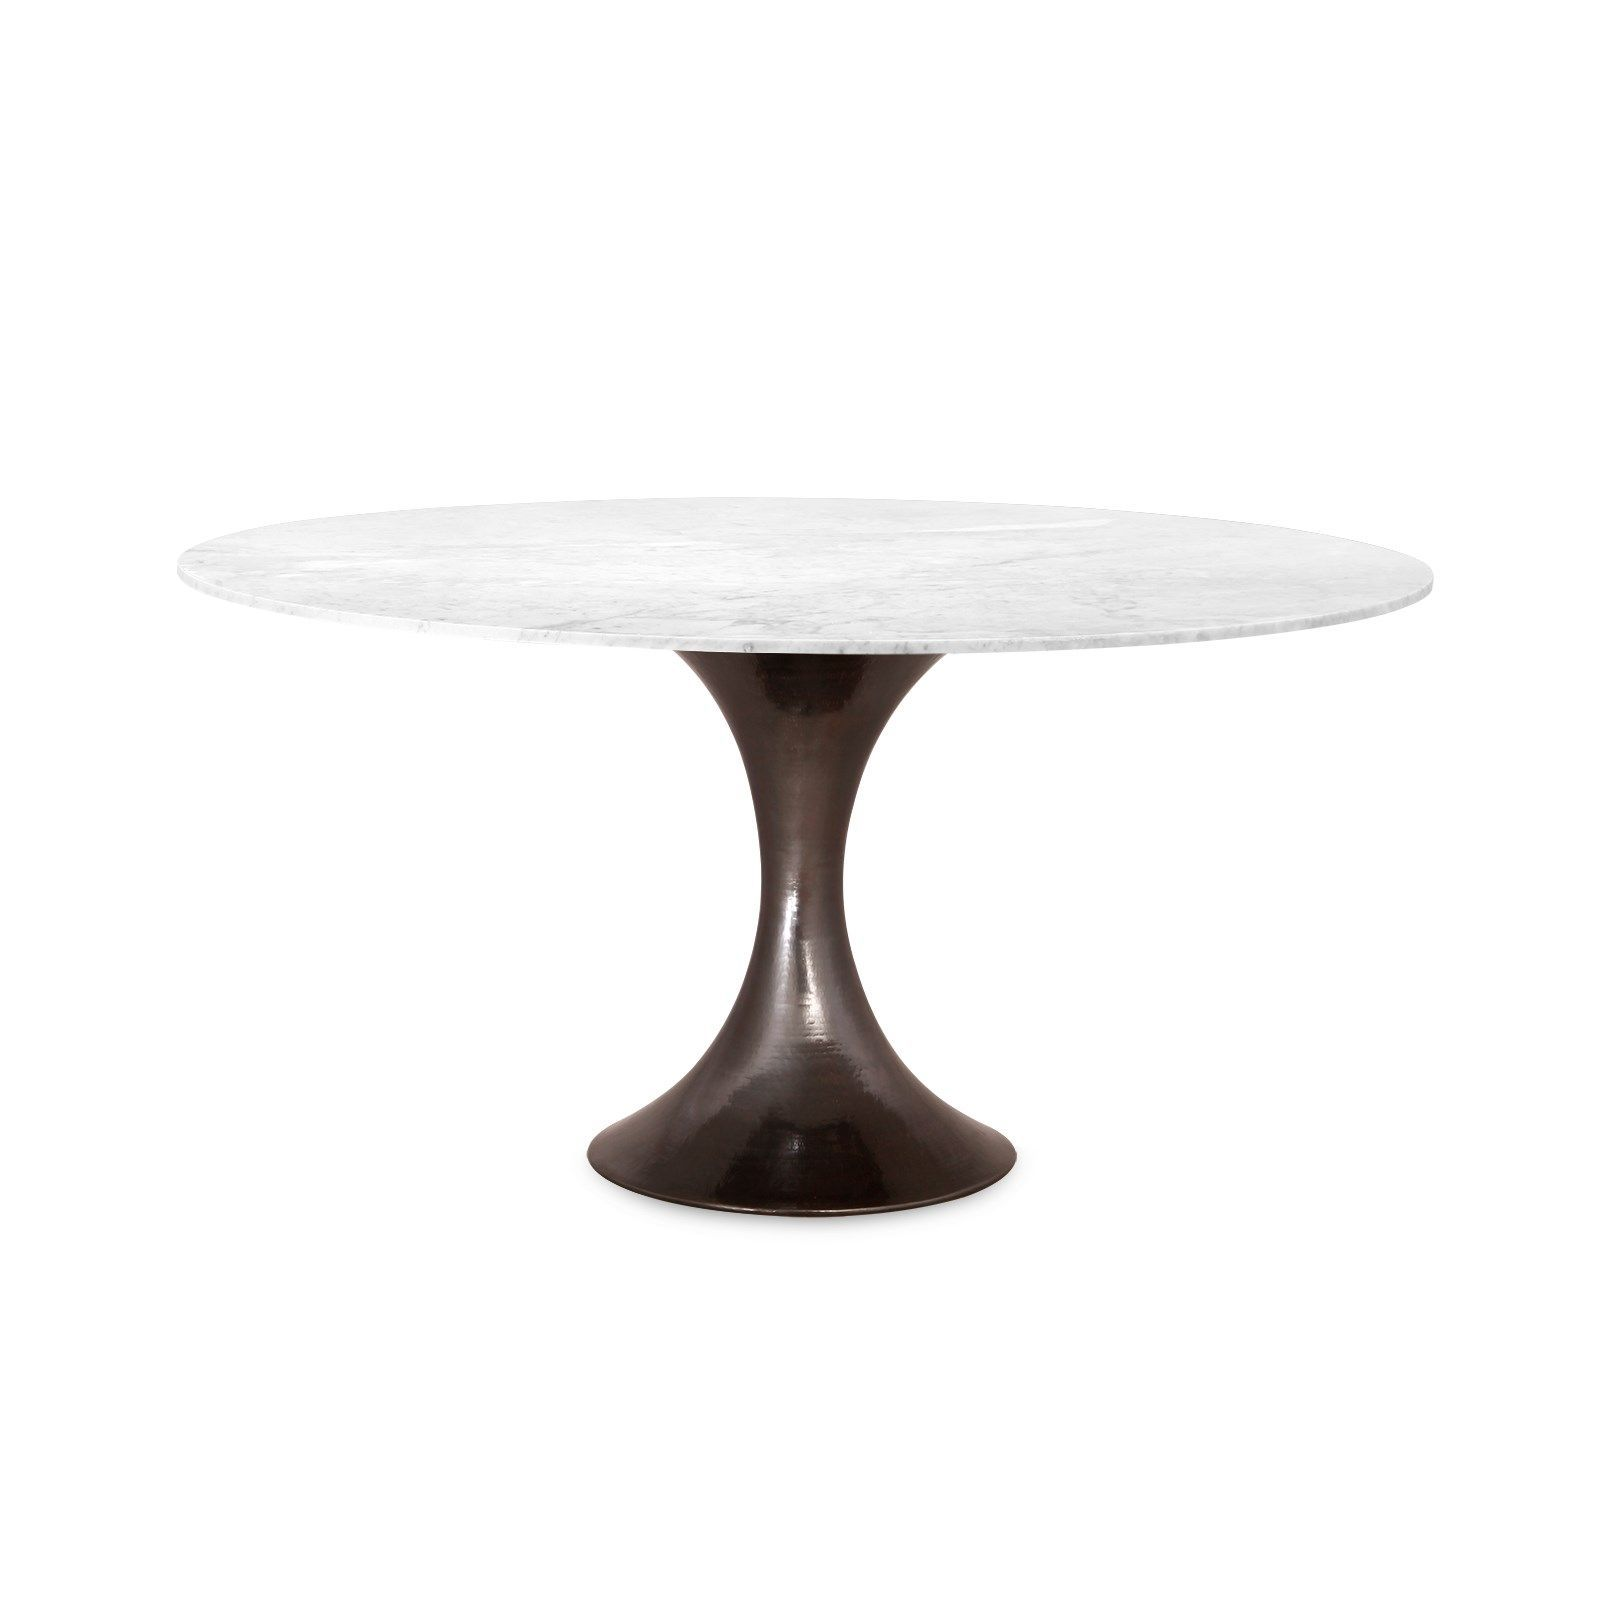 Stockholm Bronze Dining Table Base Pairs With 52 60 Top Sold Separately Dining Table Stone Top Dining Table Dining Table Bases